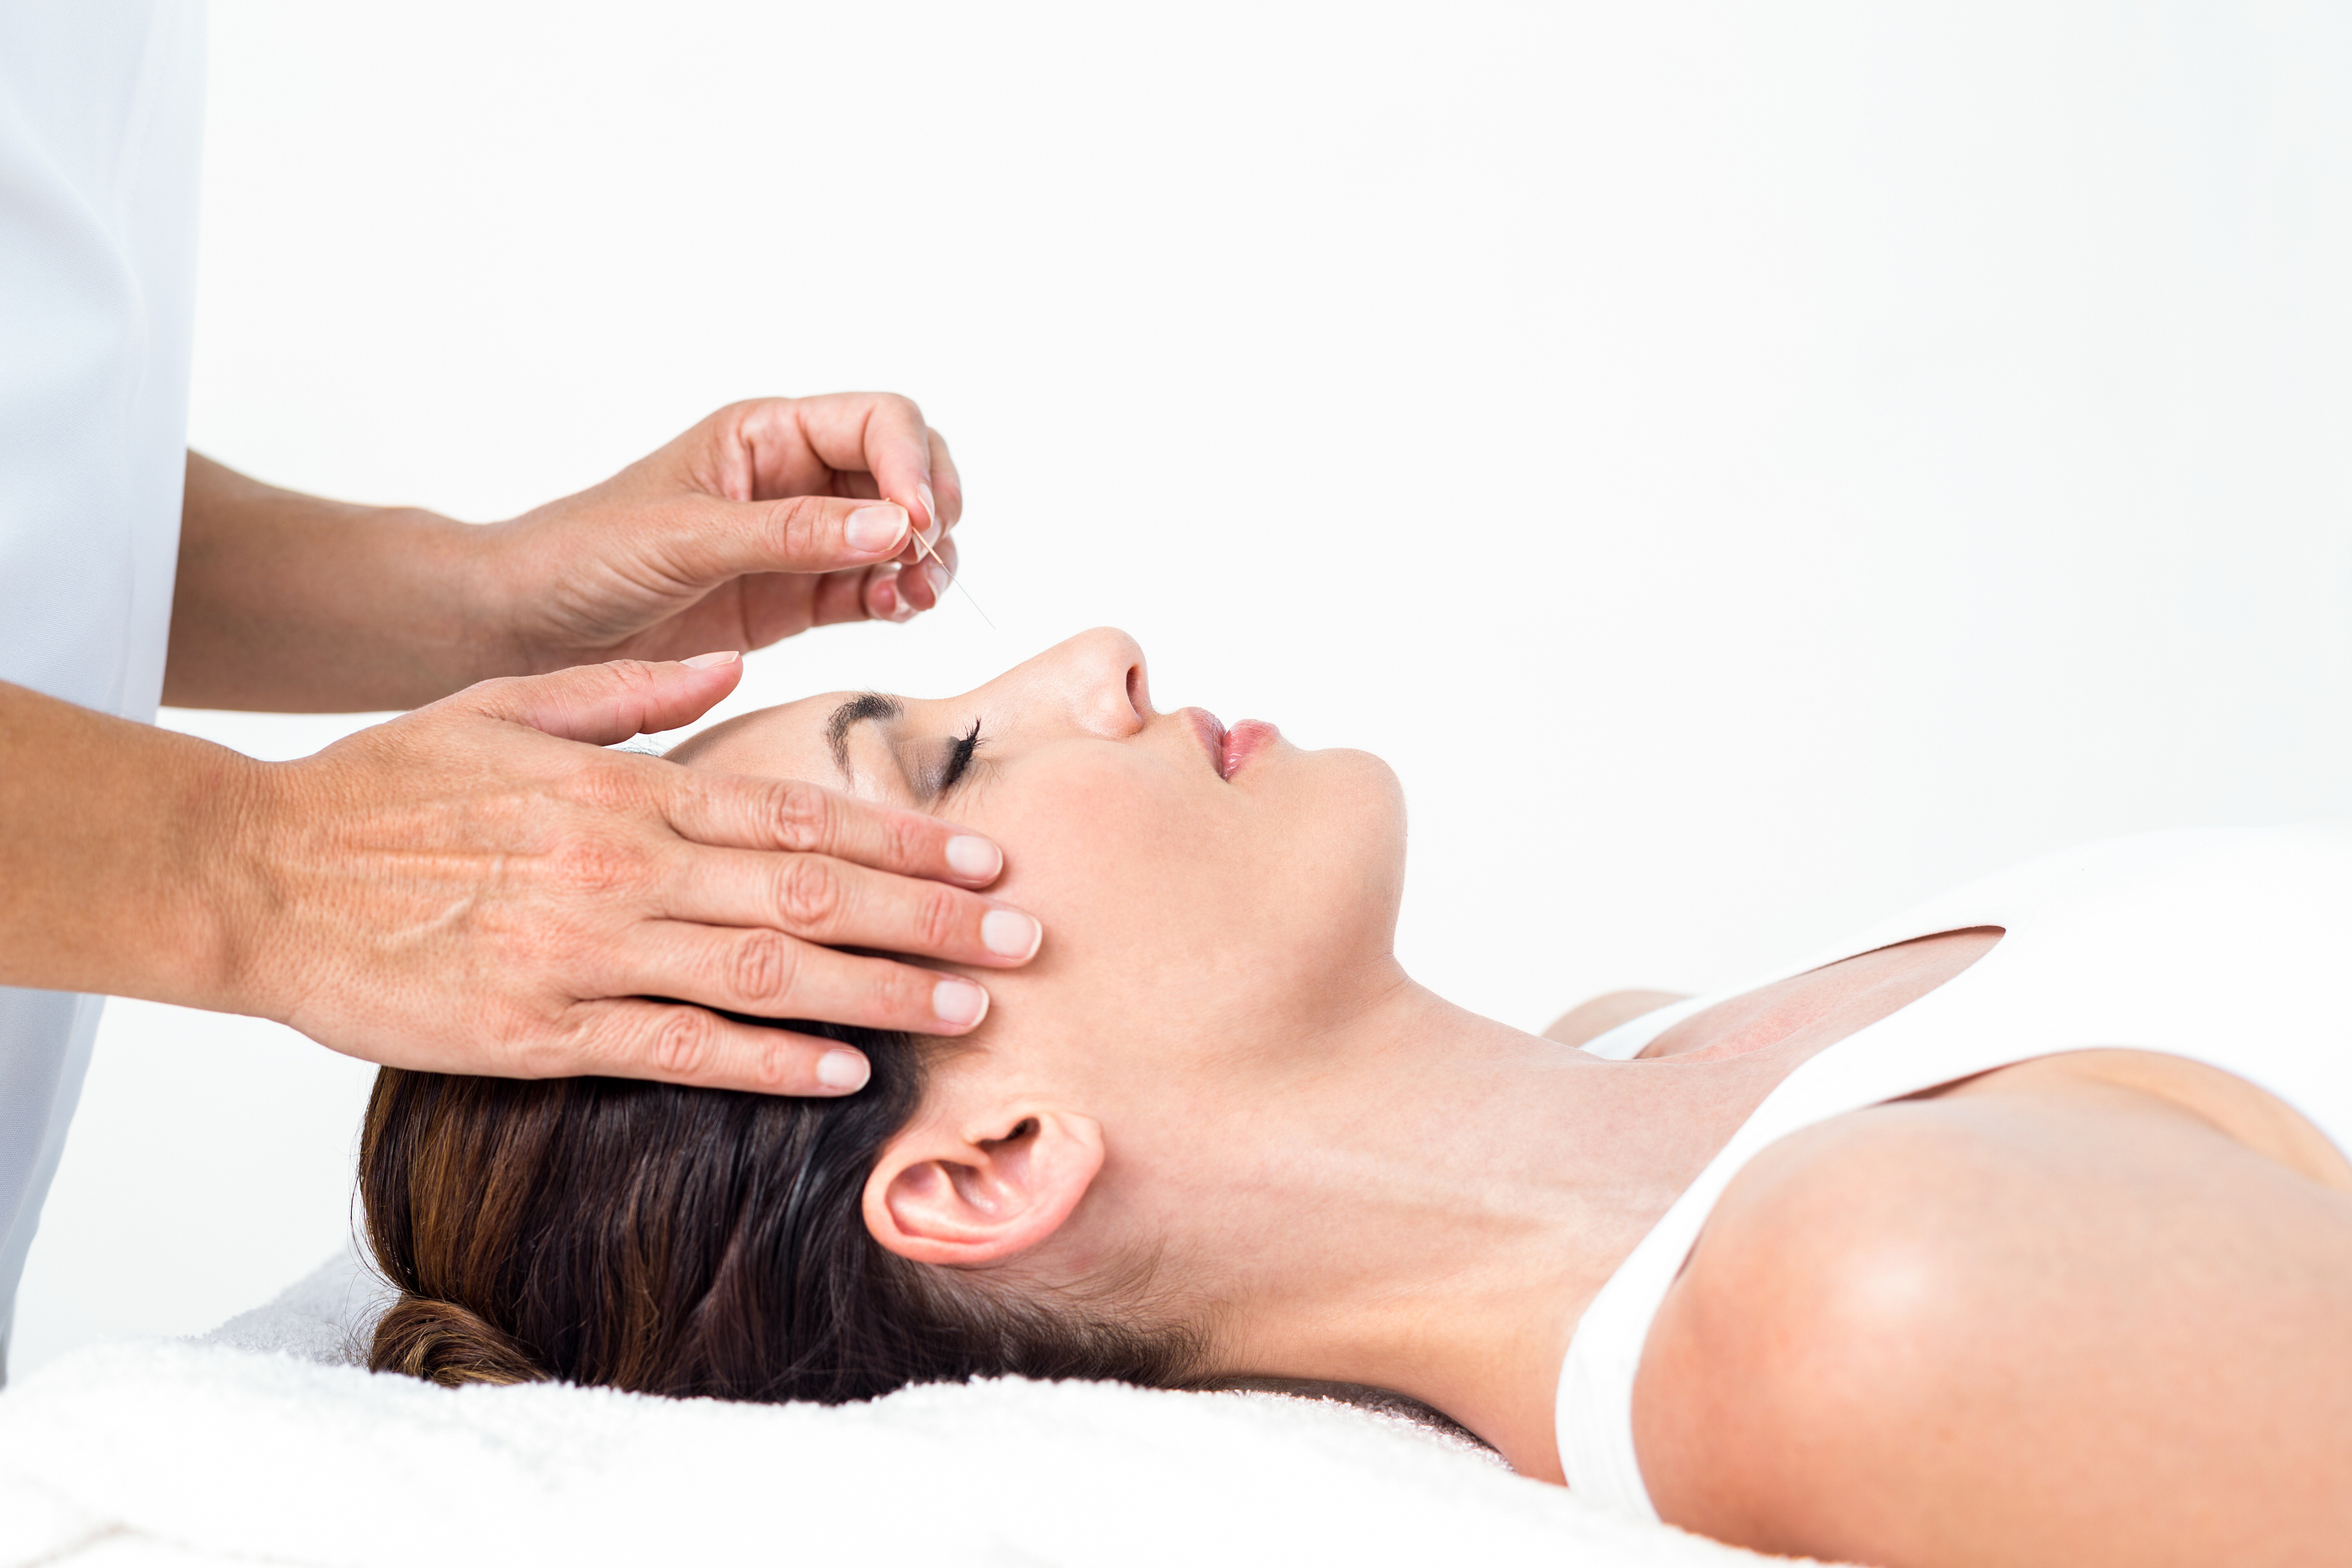 Relaxed woman receiving an acupuncture treatment in a health spa.jpg